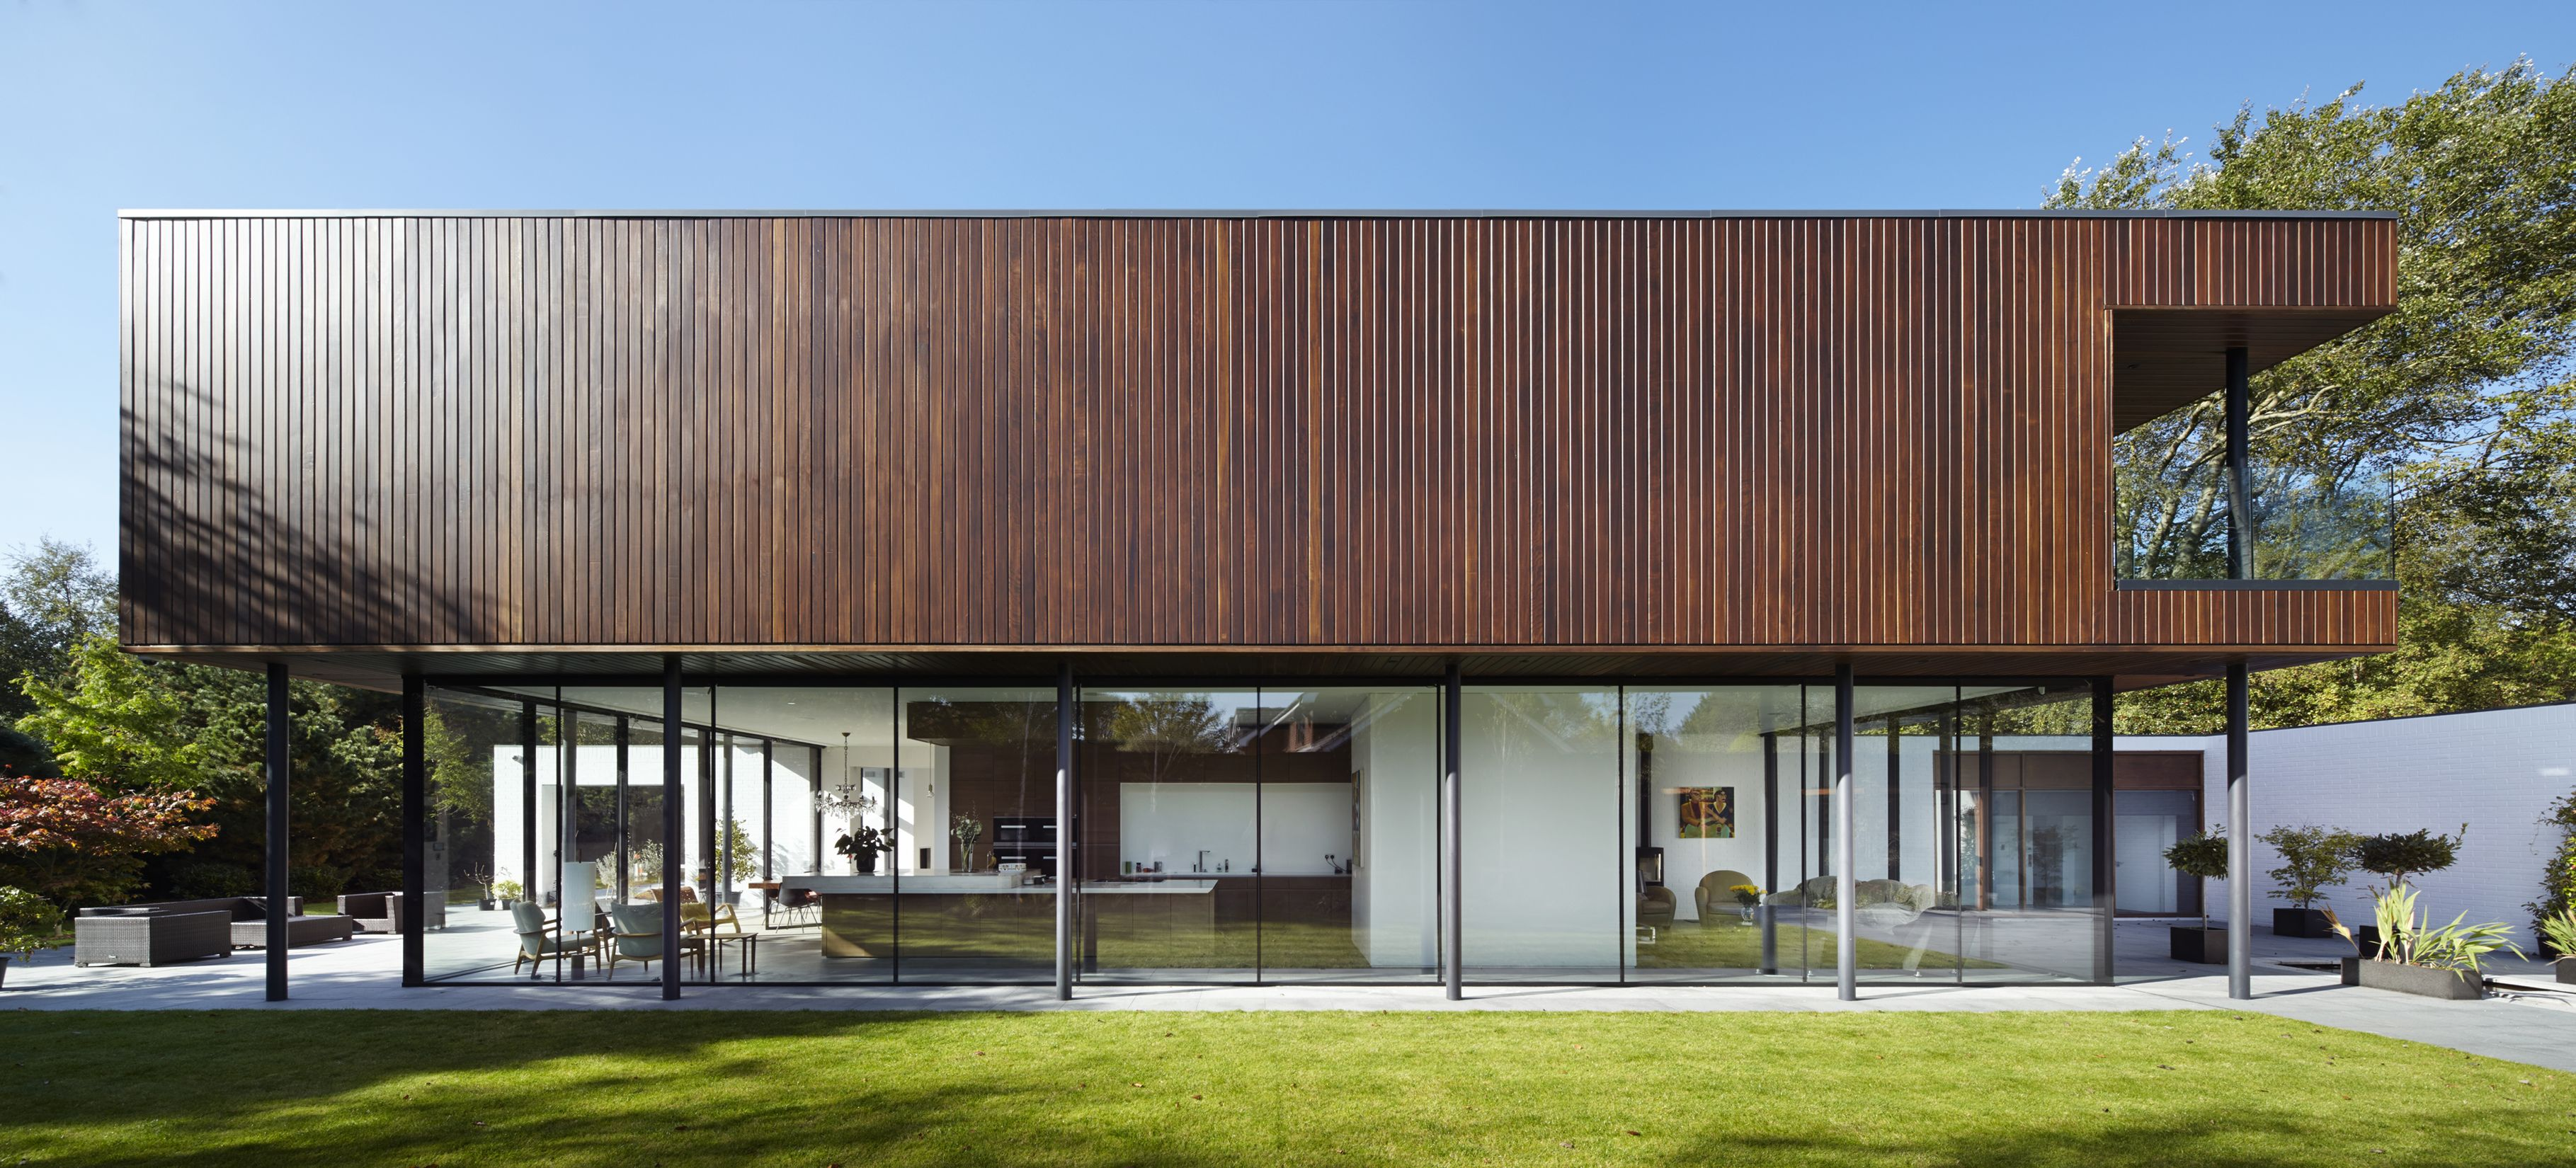 Shortlist Announced For RIBA North West Awards-House in Formby Merseyside / shed km. & Pin by Emma Carter on Exterior | Pinterest | Wood architecture ...